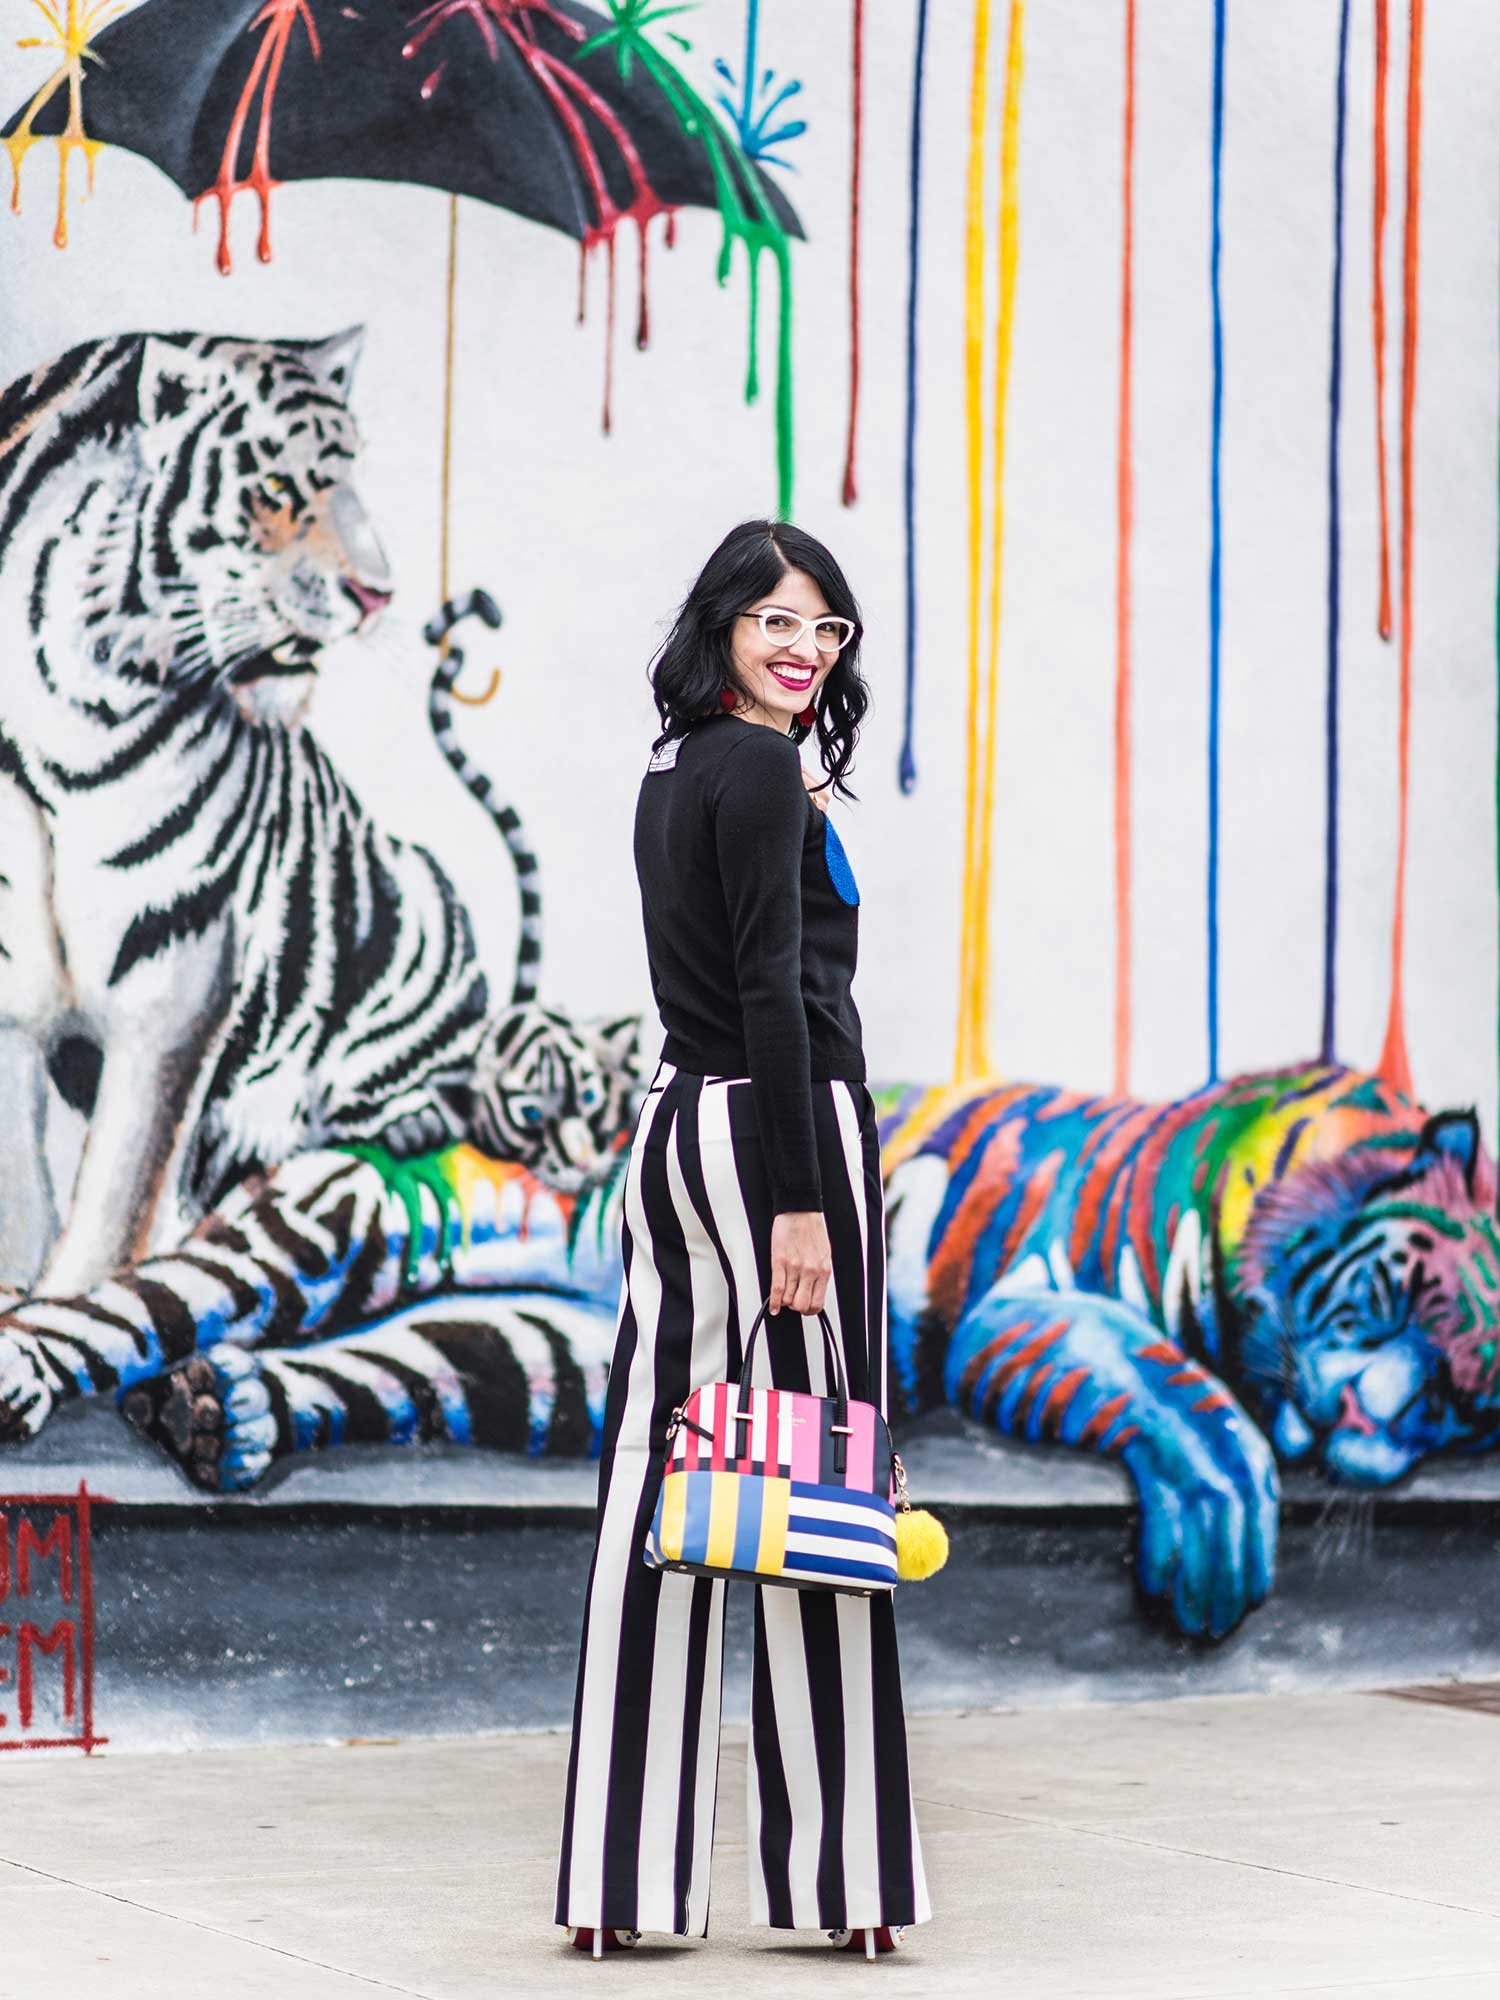 Jenna-Pilant-San-Diego-Style-Blogger-Lucky-Little-Mustardseed-How-To-Wear-Black-&-White-Striped-Pants-8